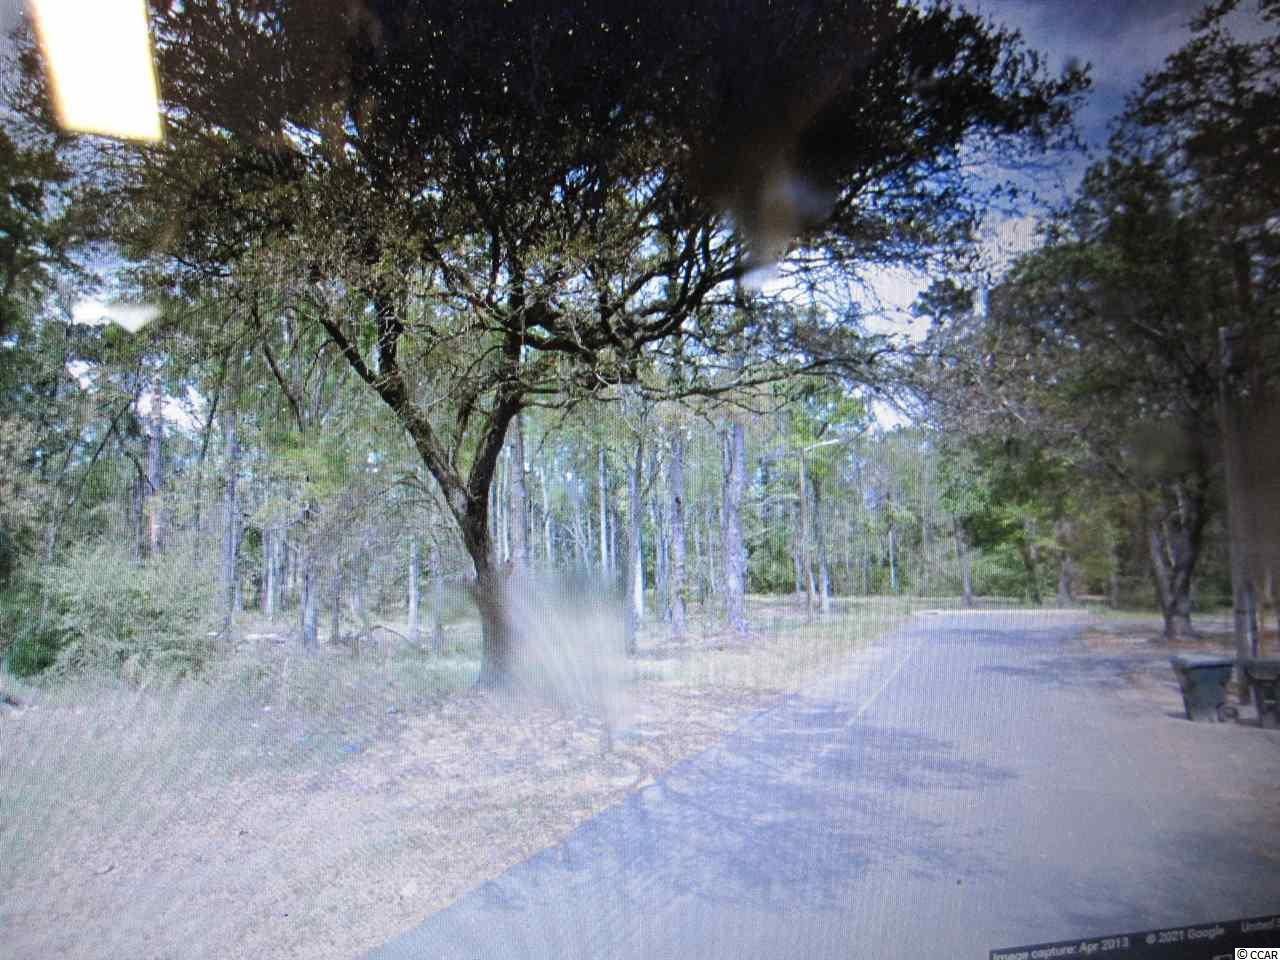 NICE LOT CLOSE TO HISTORIC DOWNTOWN . NO HOA..NO TIME TO BUILD.BRING YOUR OWN BUILDER..LOT NEXT DOOR CAN BE ALSO PURCHSED TO BUILD BIGGER HOUSE